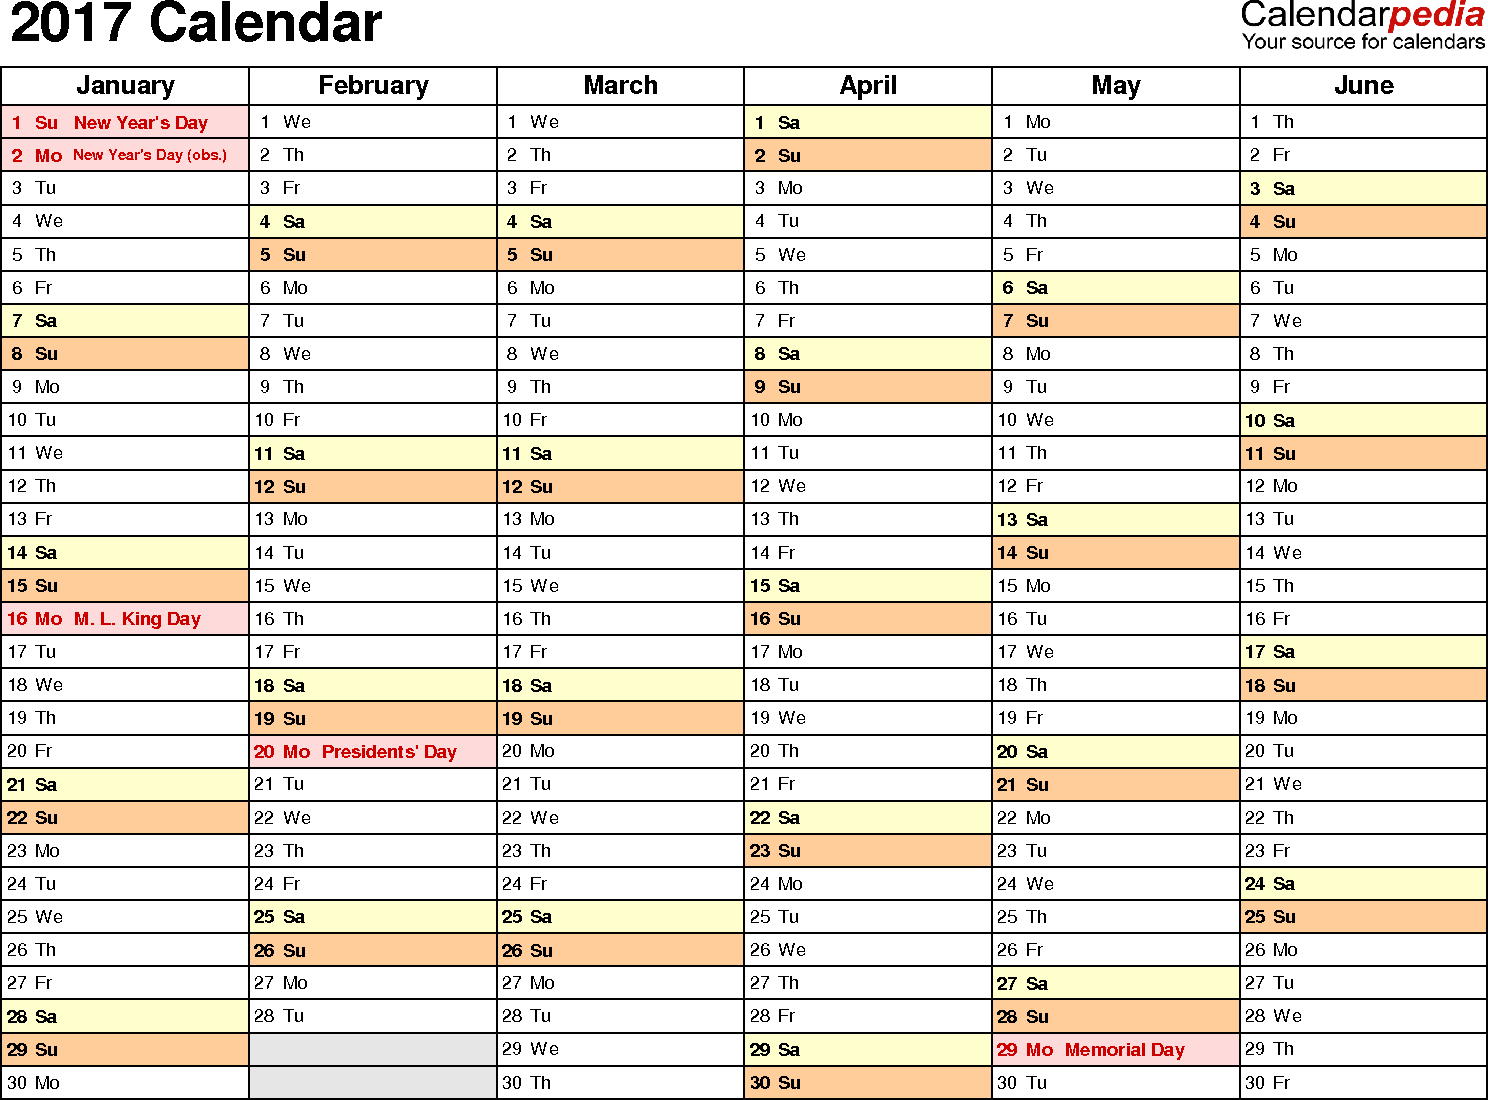 Ediblewildsus  Prepossessing  Calendar  Download  Free Printable Excel Templates Xls With Lovable Template   Calendar For Excel Months Horizontally  Pages Landscape Orientation With Cute Read Excel In R Also Gap Analysis Template Excel In Addition How To Unhide All Sheets In Excel And Accel Vs Excel As Well As Conditional Formulas In Excel Additionally Excel Academy Denver From Calendarpediacom With Ediblewildsus  Lovable  Calendar  Download  Free Printable Excel Templates Xls With Cute Template   Calendar For Excel Months Horizontally  Pages Landscape Orientation And Prepossessing Read Excel In R Also Gap Analysis Template Excel In Addition How To Unhide All Sheets In Excel From Calendarpediacom